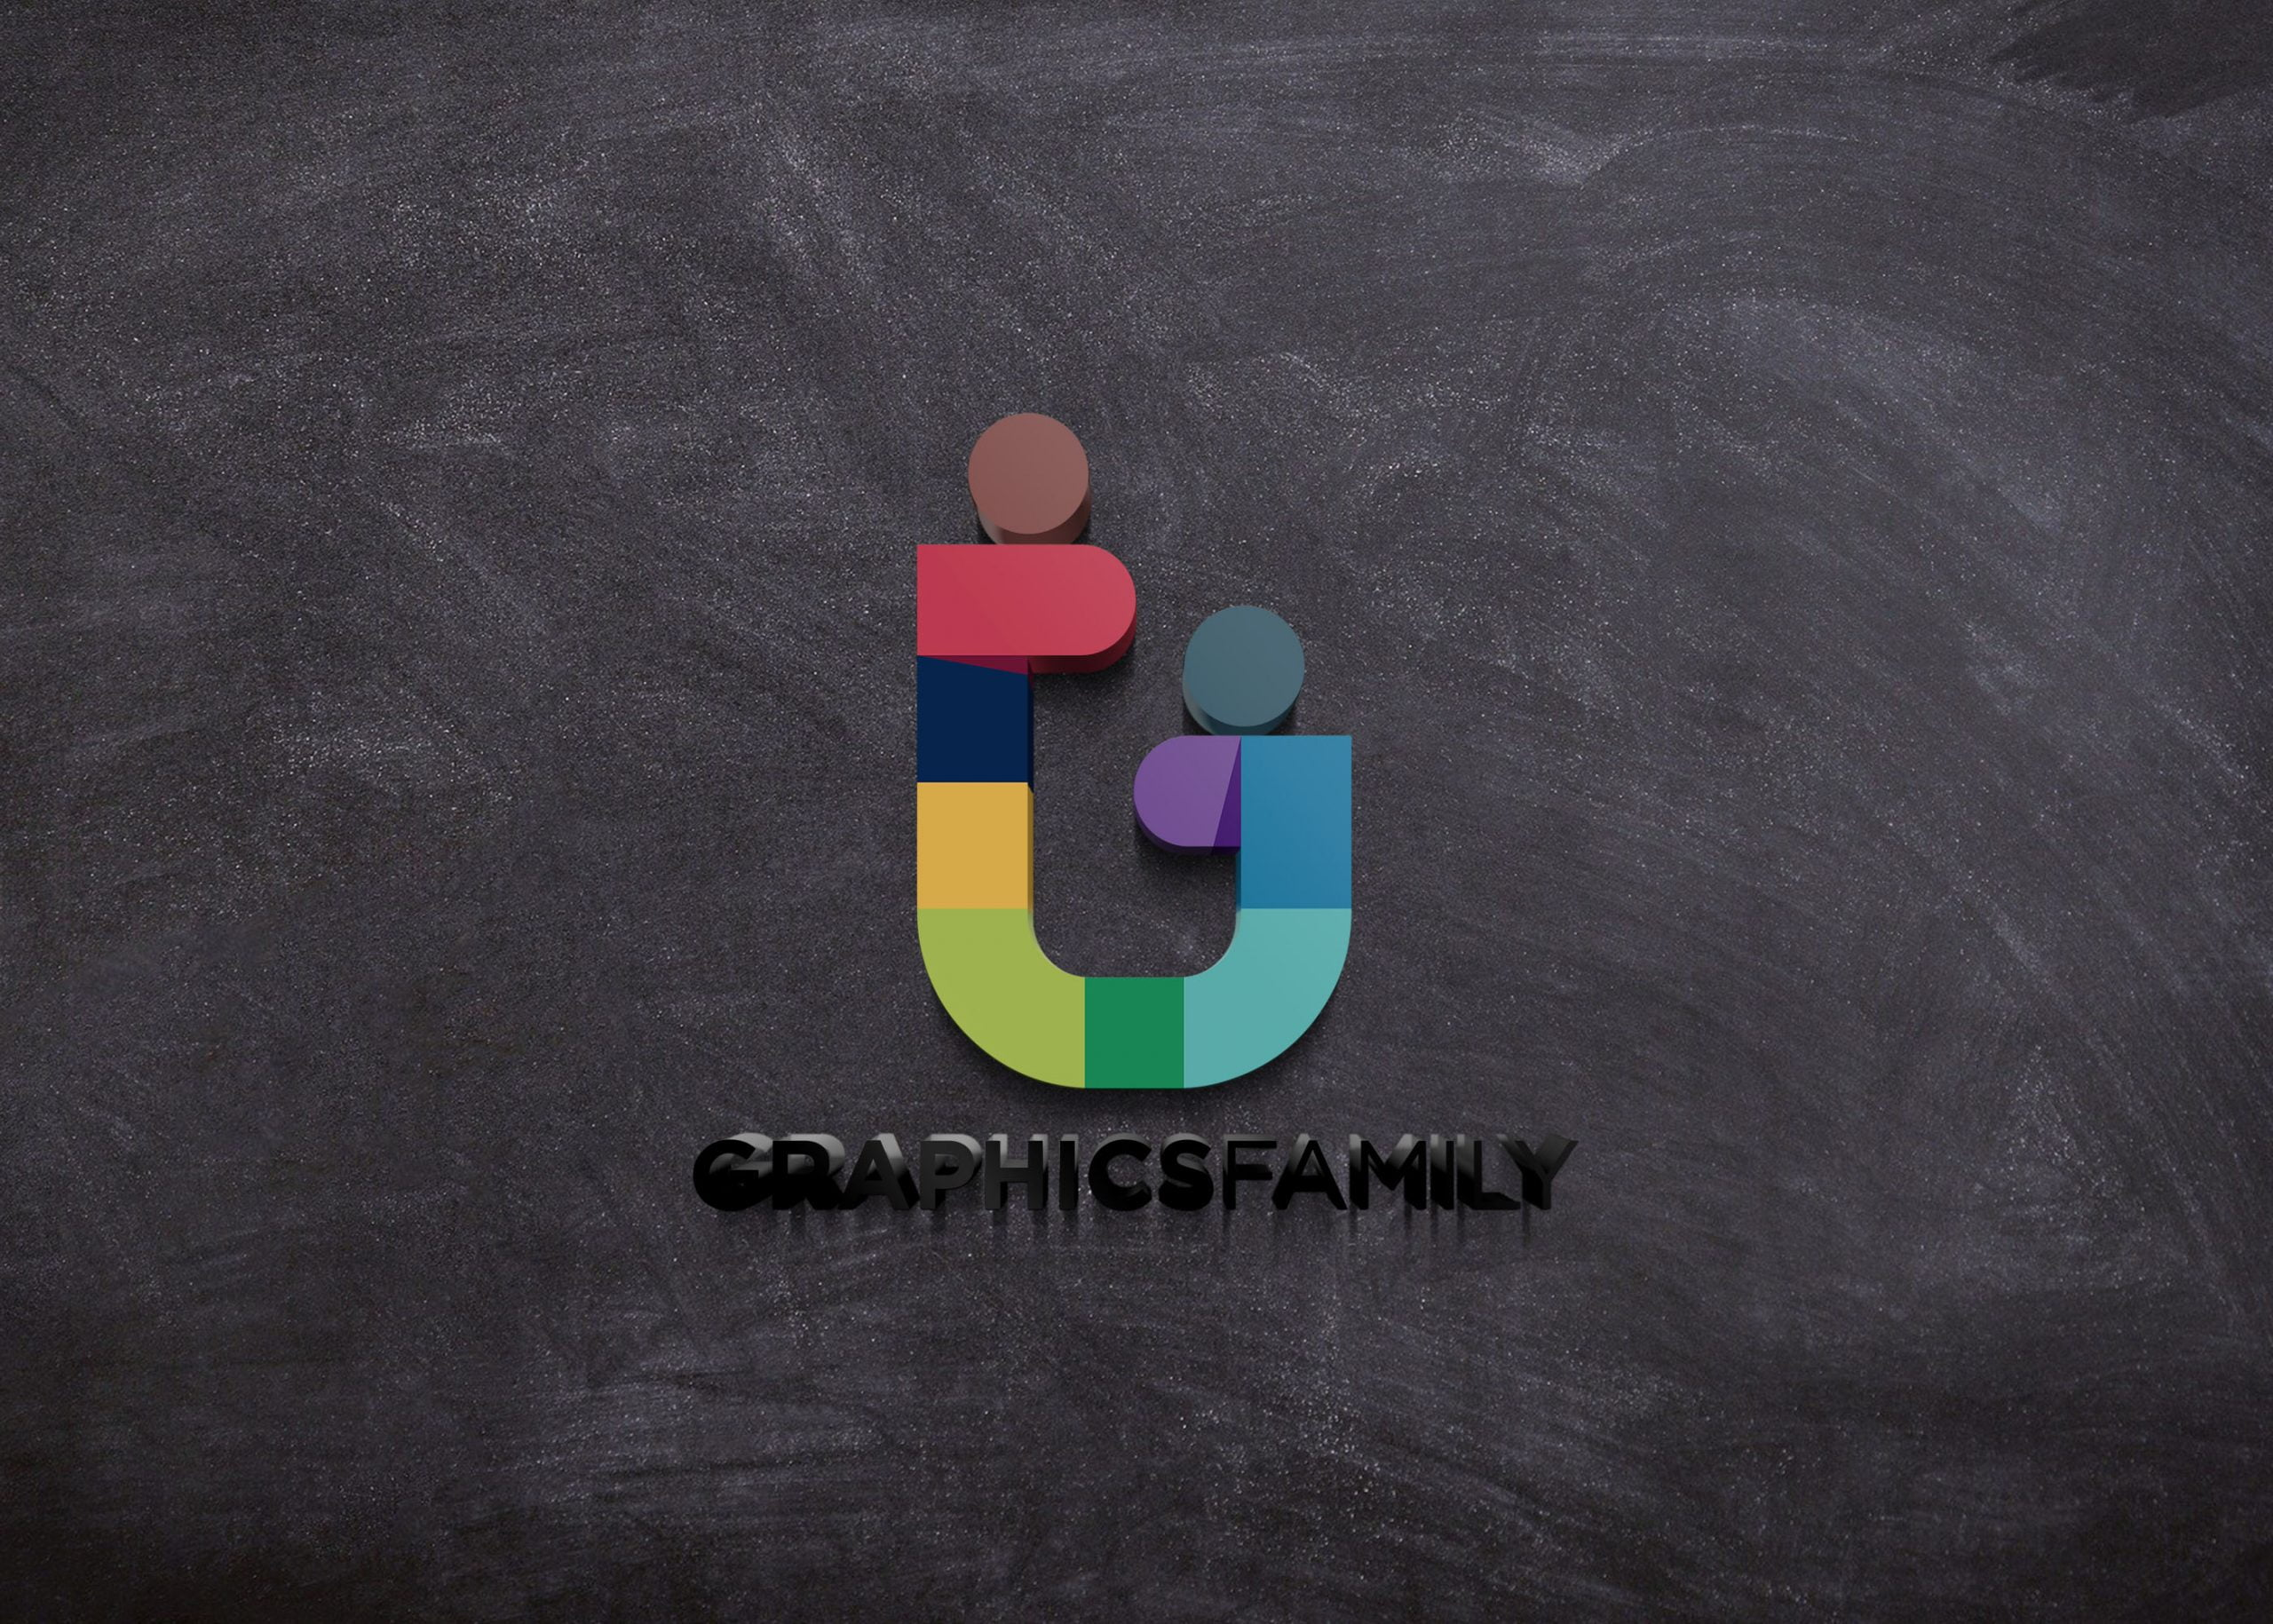 GraphicsFamily logo on 3d black wall